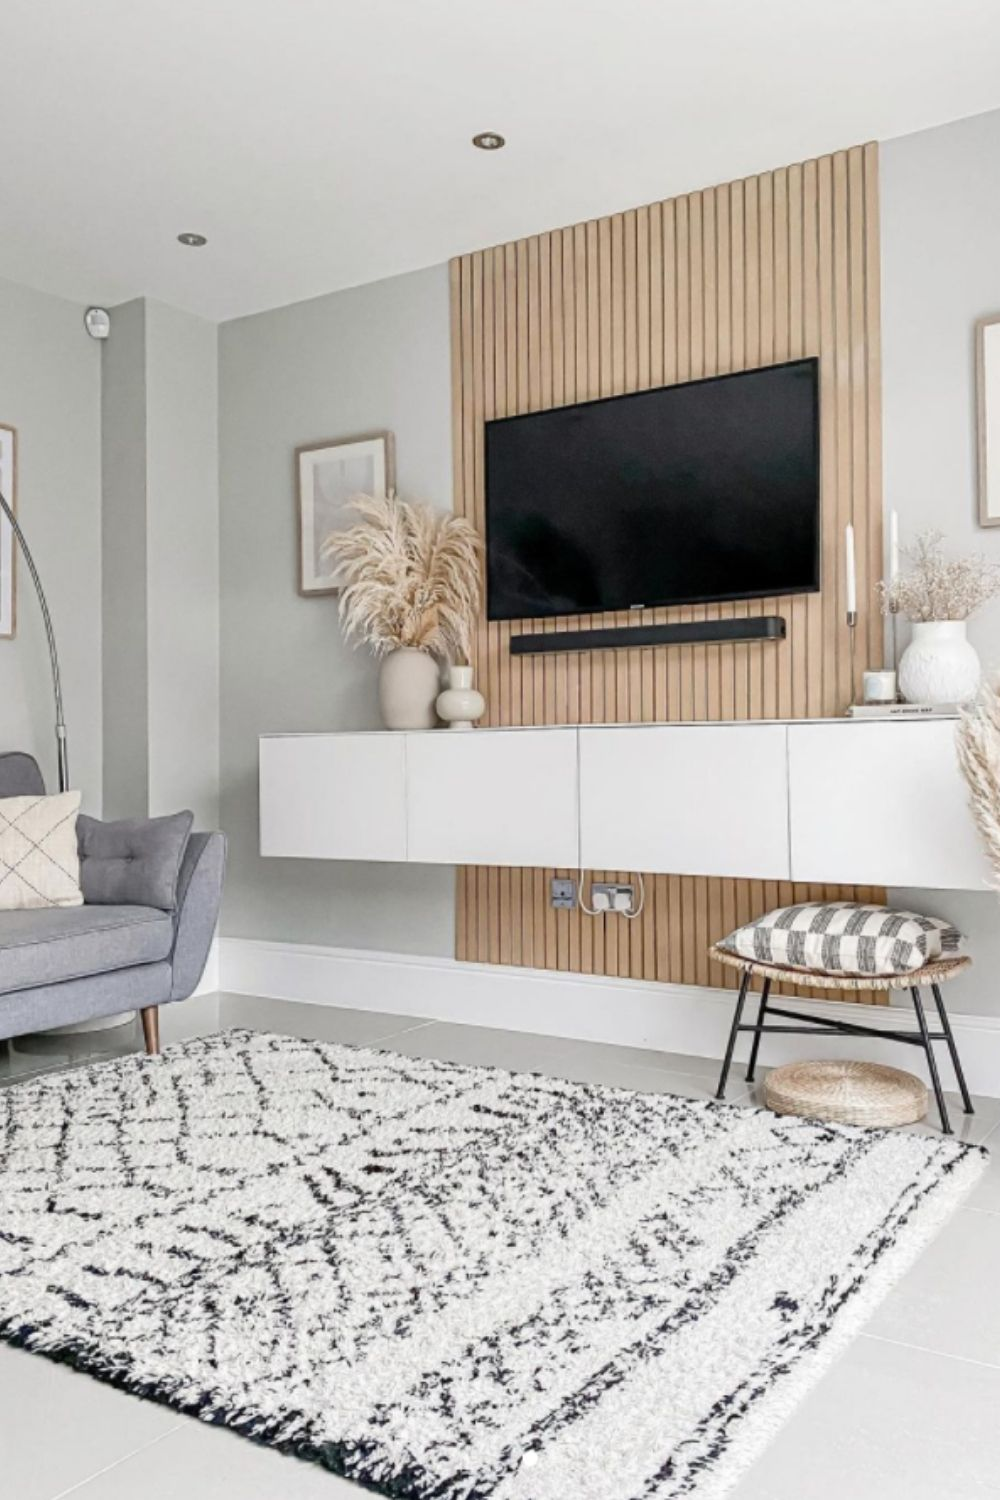 30 Living room decor 2021 You'll Want to Steal ASAP